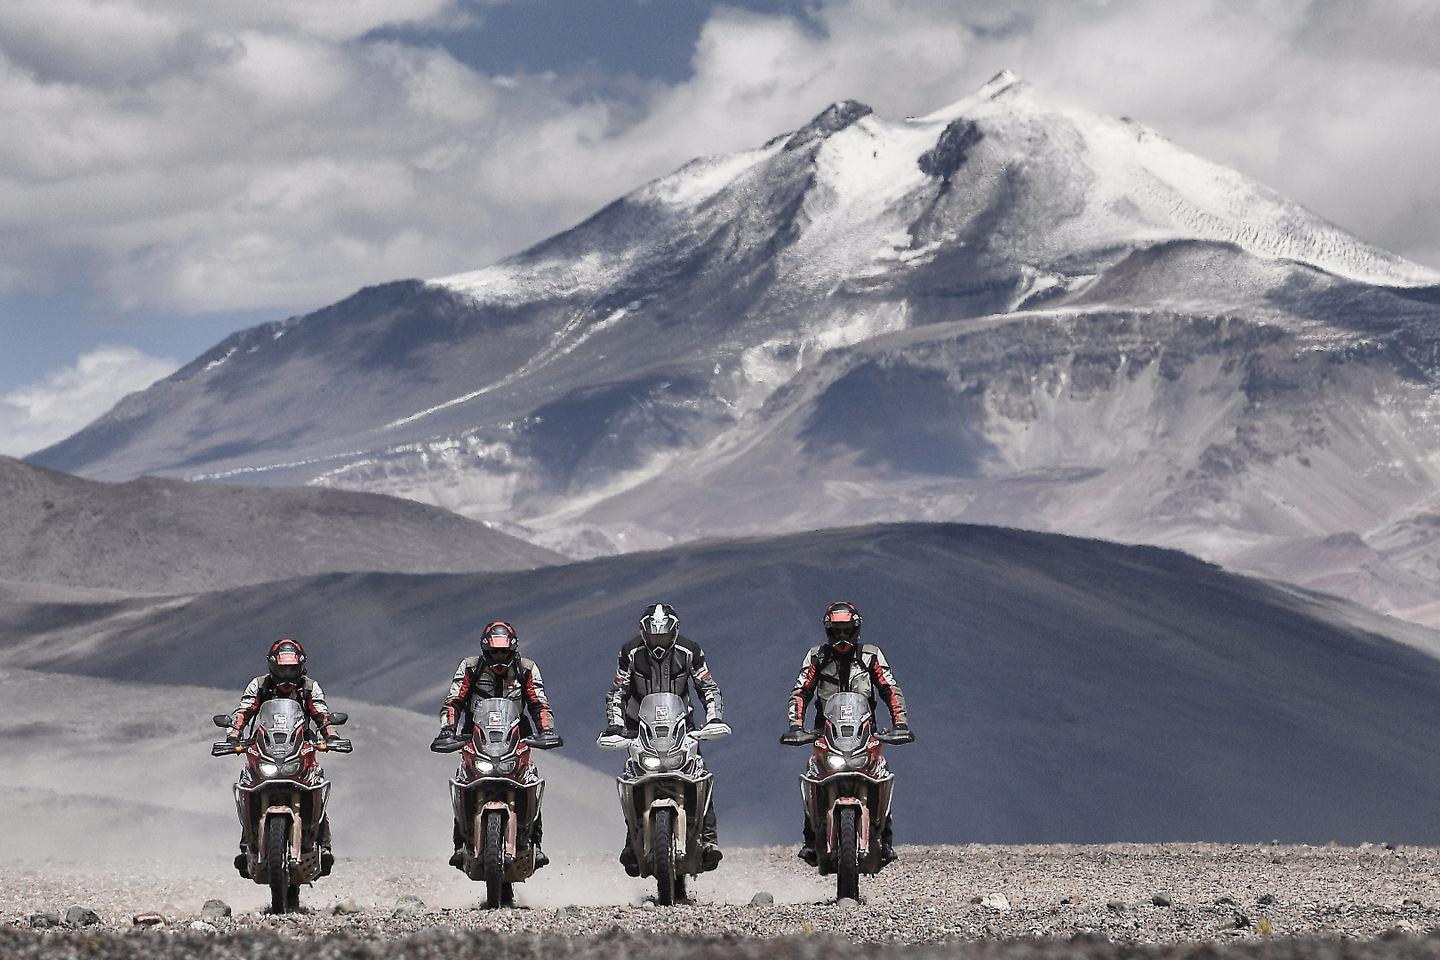 The fleet of Honda Africa Twins on the way to a world record